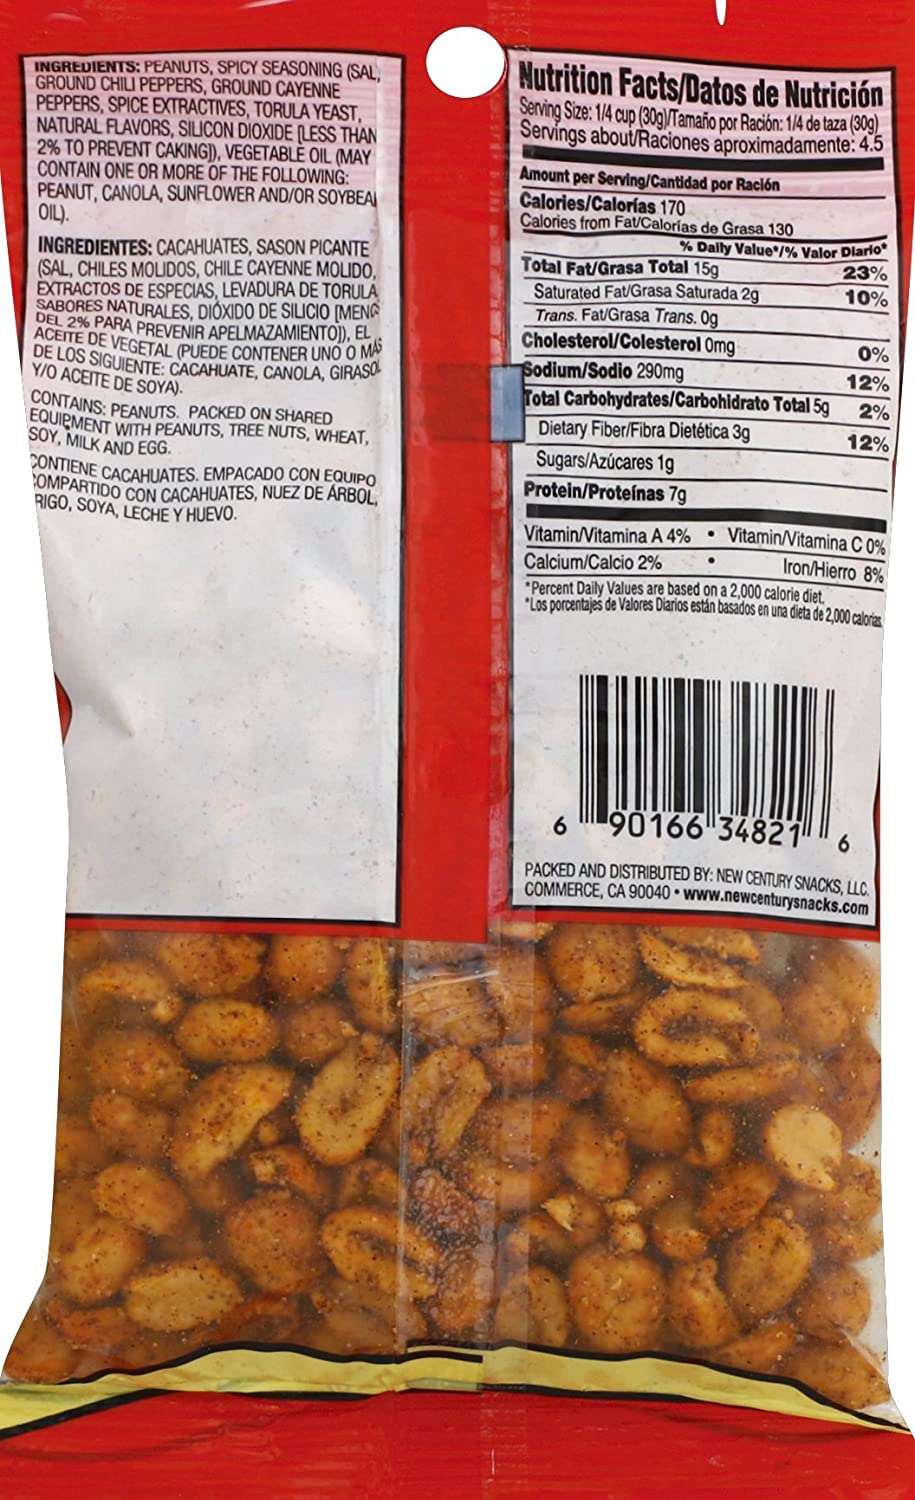 Amazon.com : Muncheros Hot & Spicy Peanuts, 5-Ounces, 12-Pack : Grocery & Gourmet Food